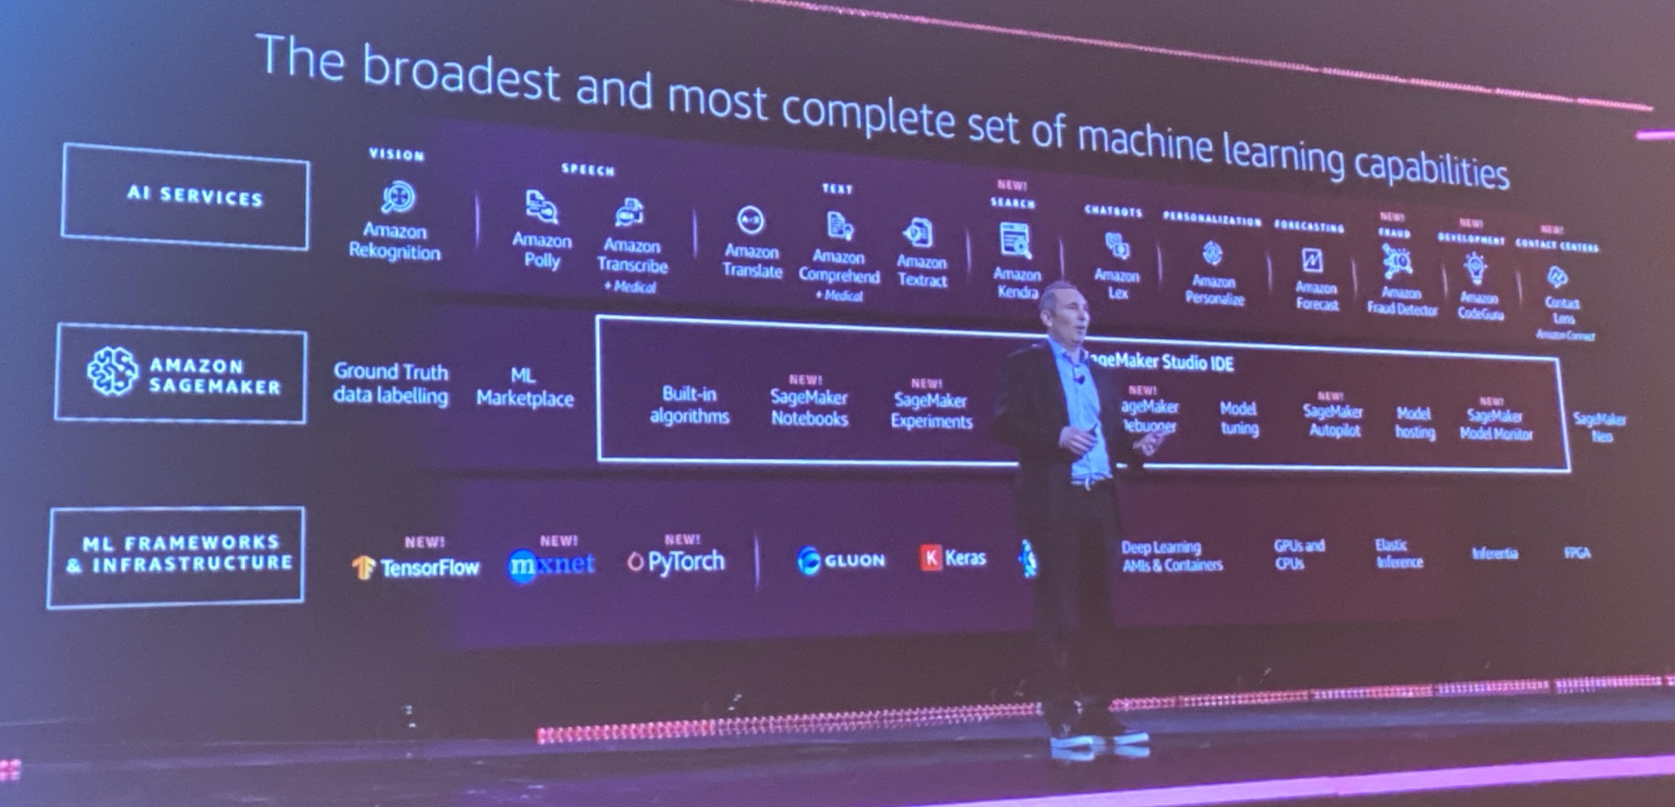 AWS CEO Andy Jassy at the re:invent 2019 keynote